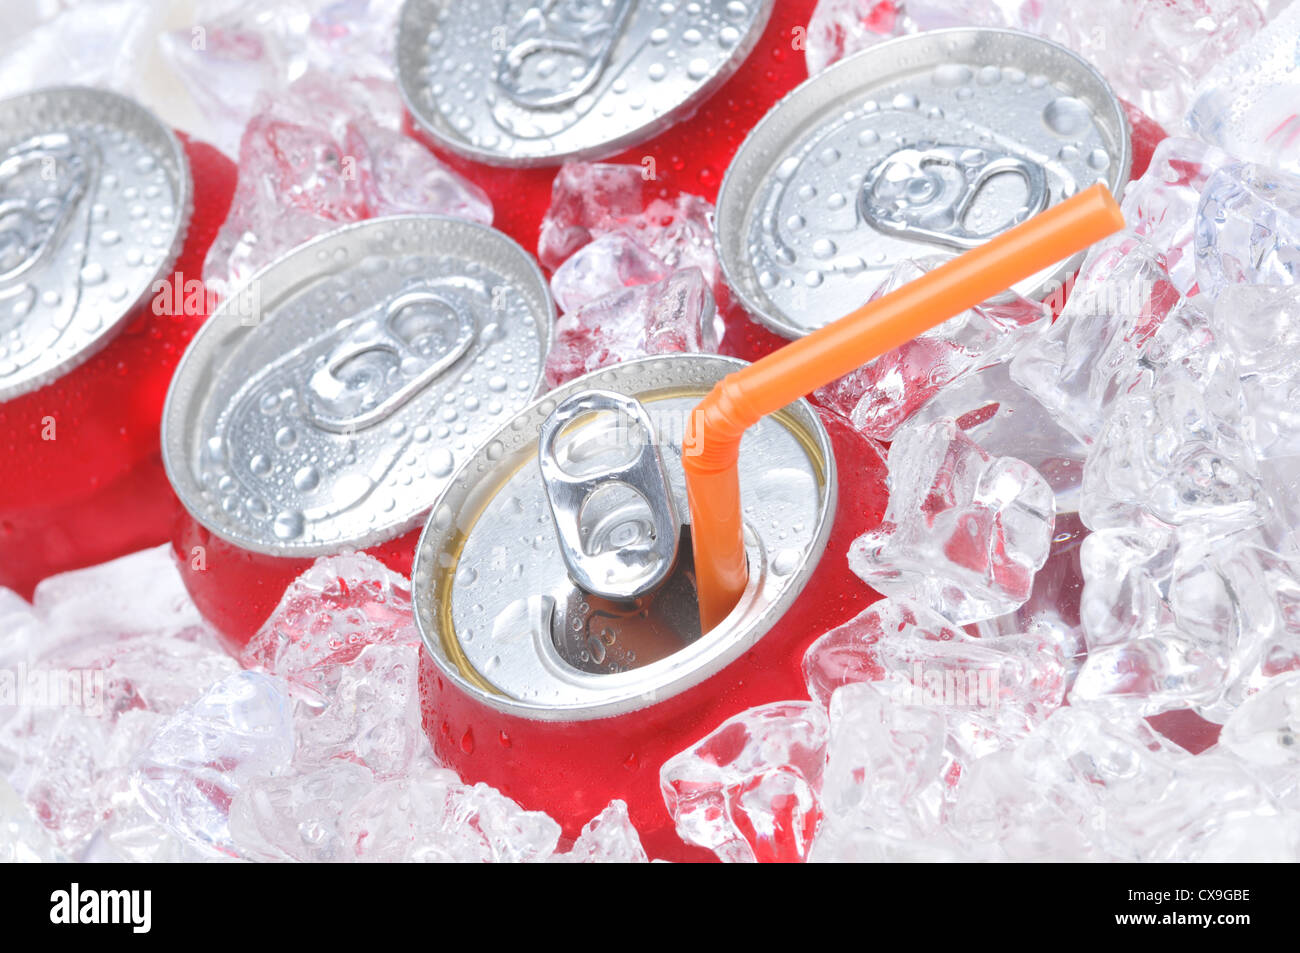 Close Up of Soda Cans in Ice with Straw and Condensation - Stock Image